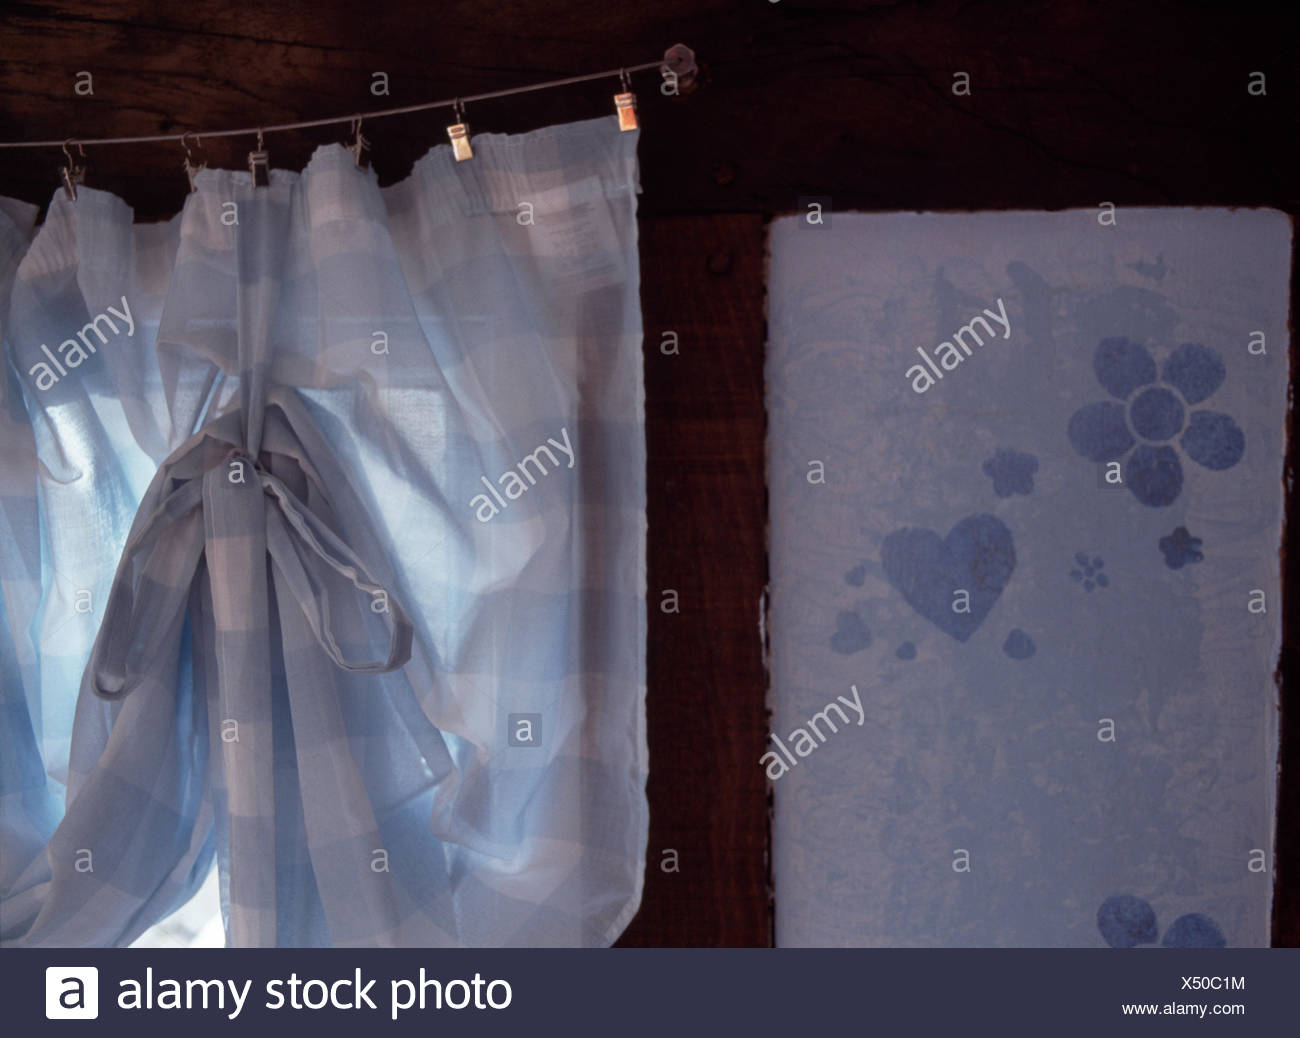 Close-up of a pale blue checked curtain on wire with metal clips beside a stenciled panel - Stock Image